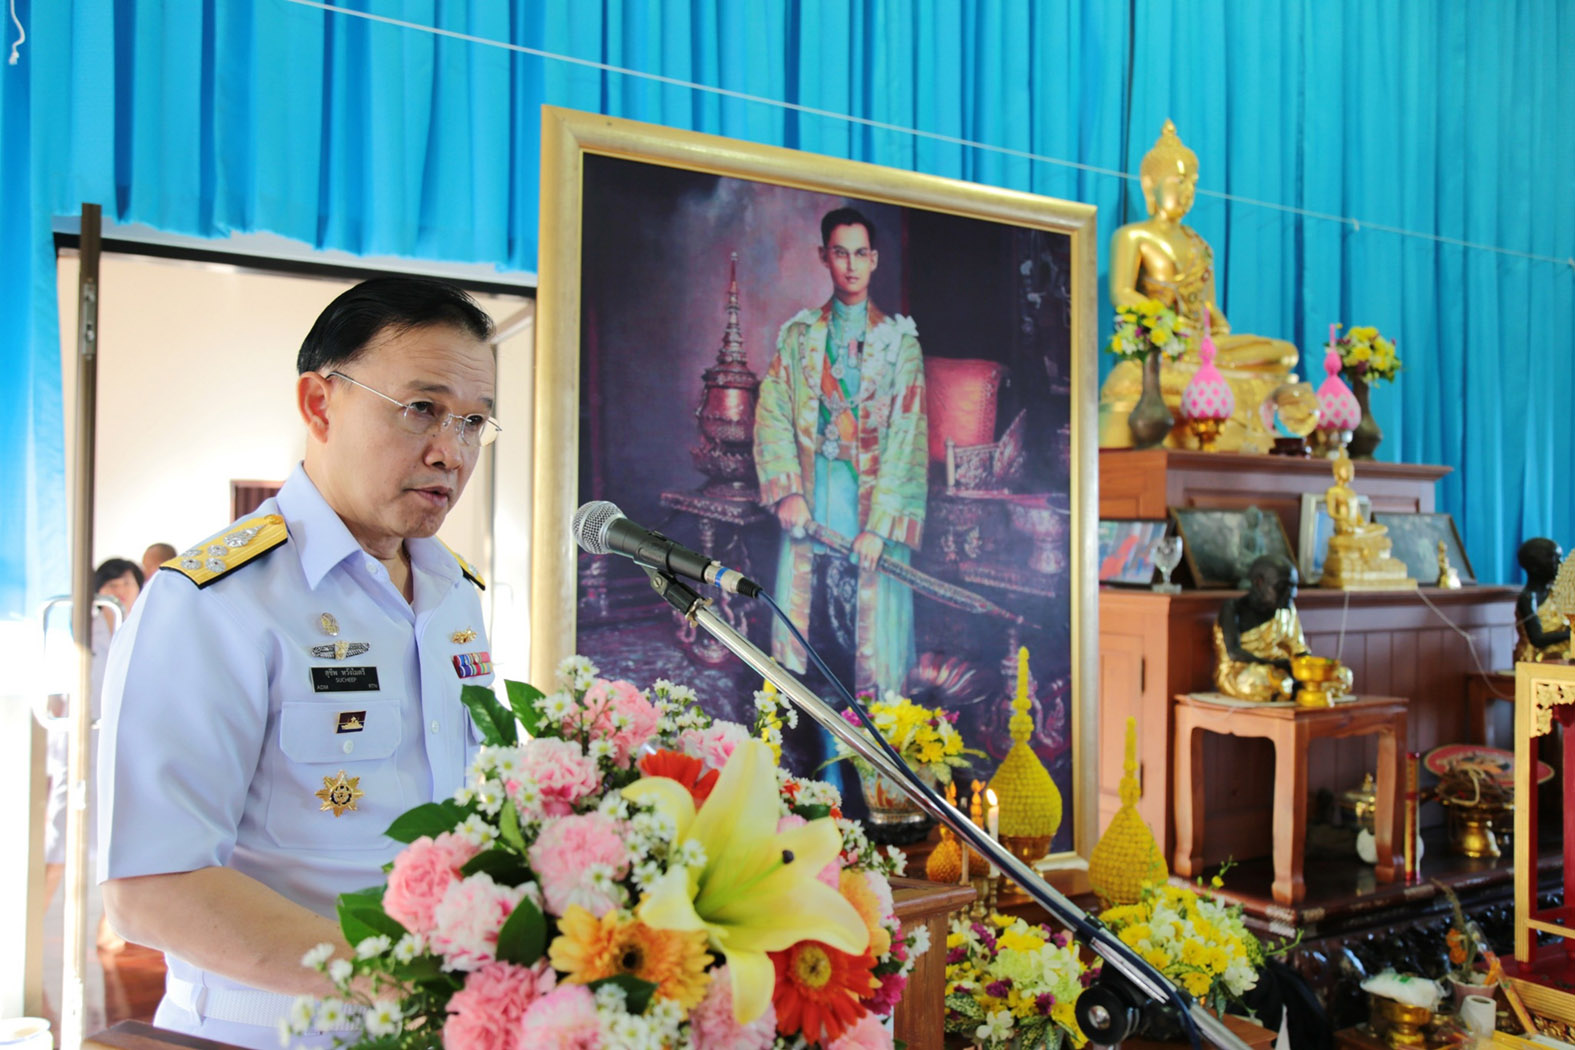 Adm. Sucheep Whoungmaitree, commander of the Royal Thai Fleet, chaired the head-shaving ceremony for 145 sailors being ordained as monks.